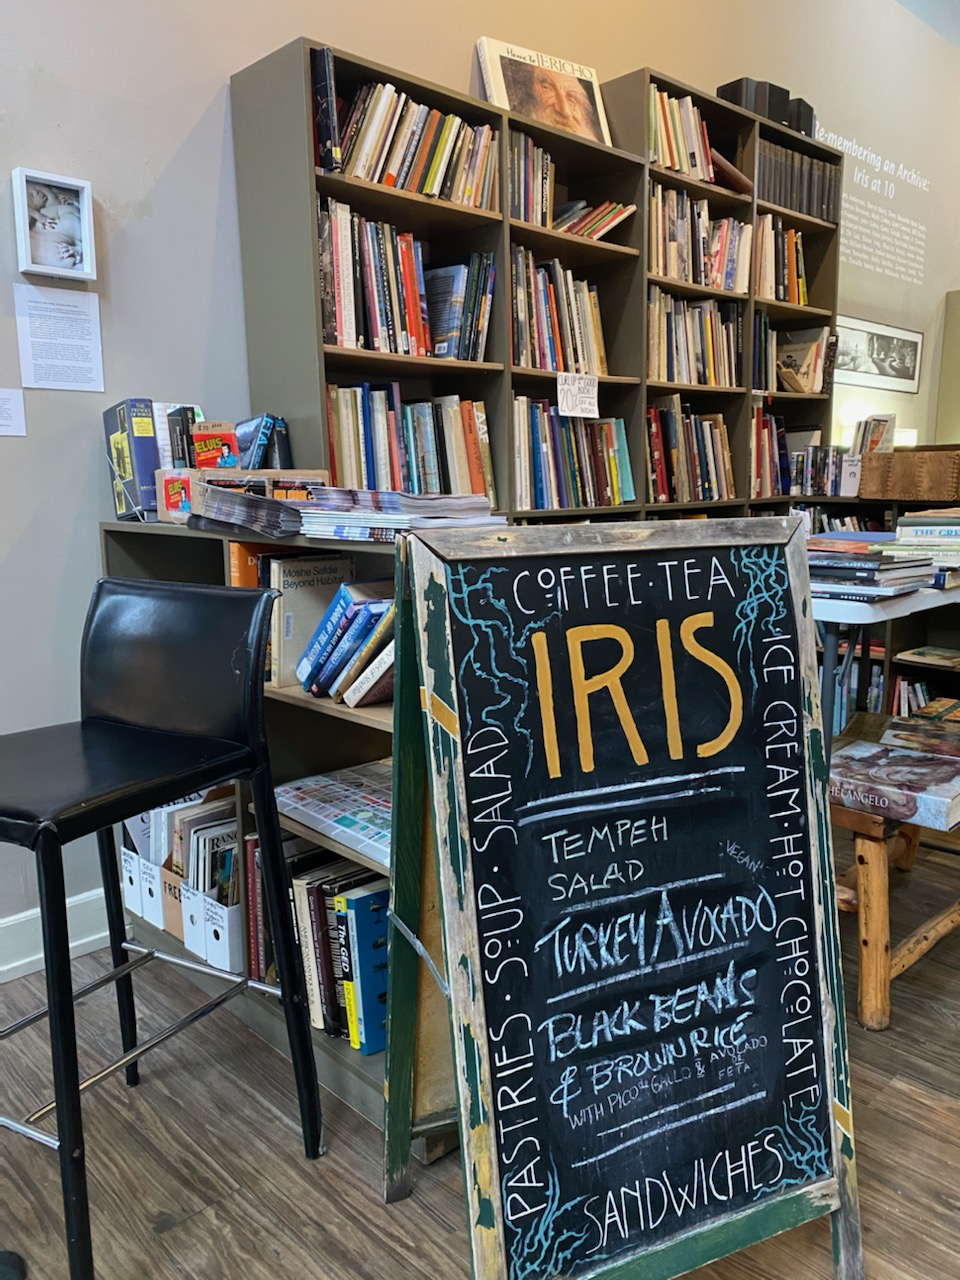 Iris Bookcafe in OTR